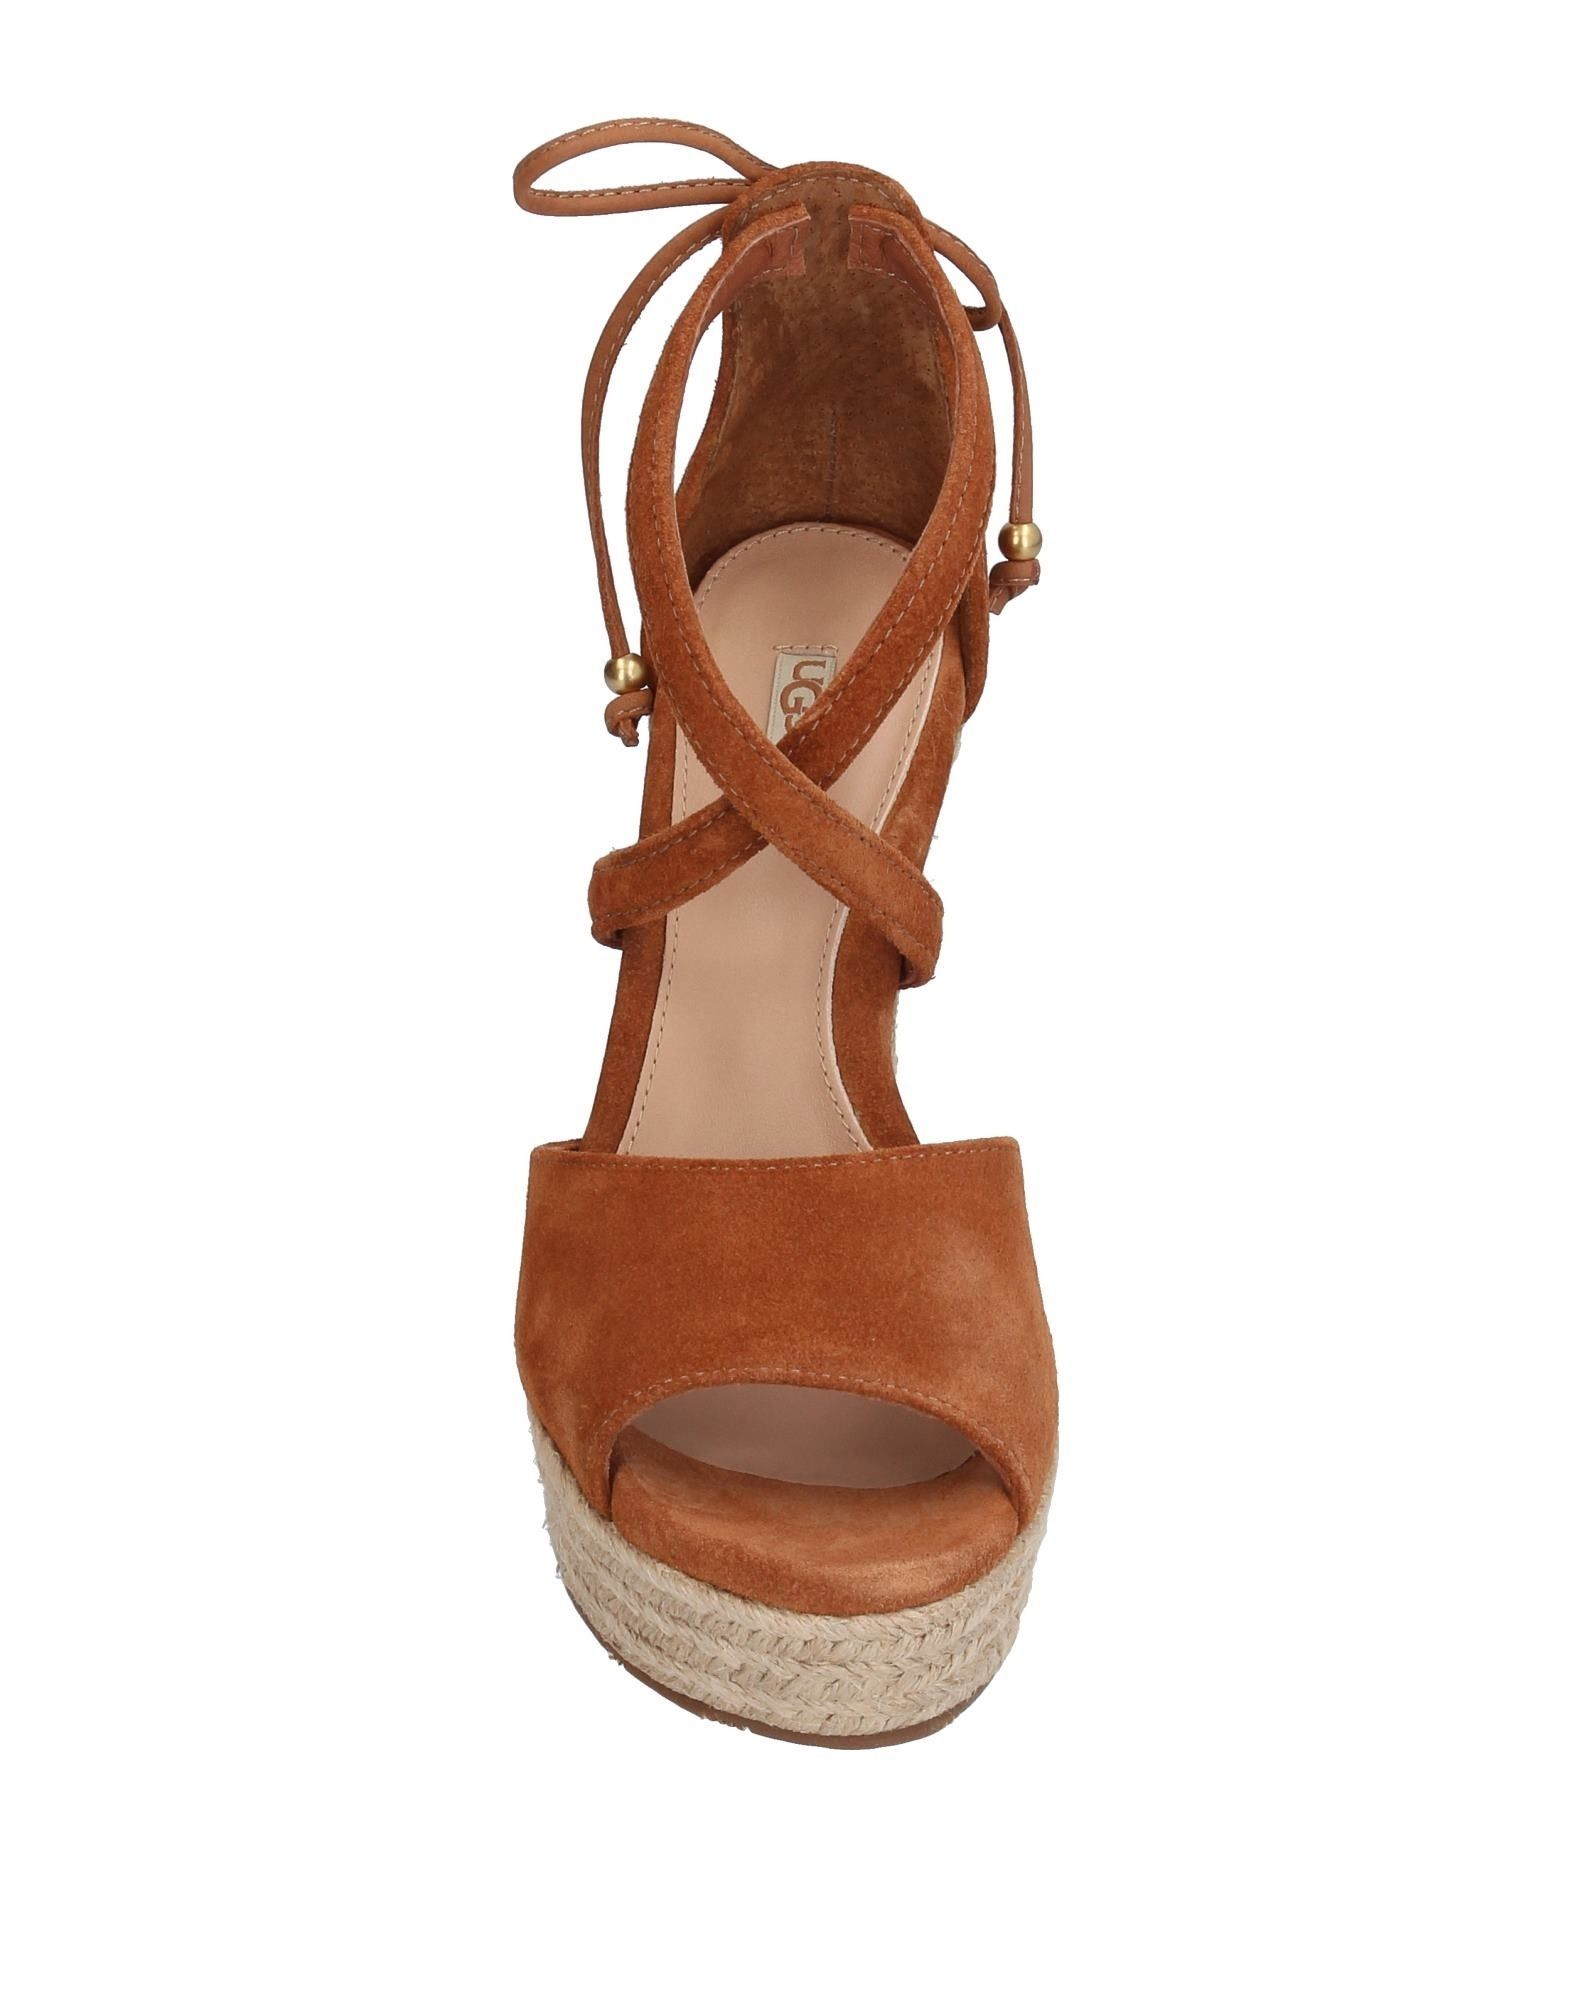 Ugg Australia Brown Leather Espadrille Wedges